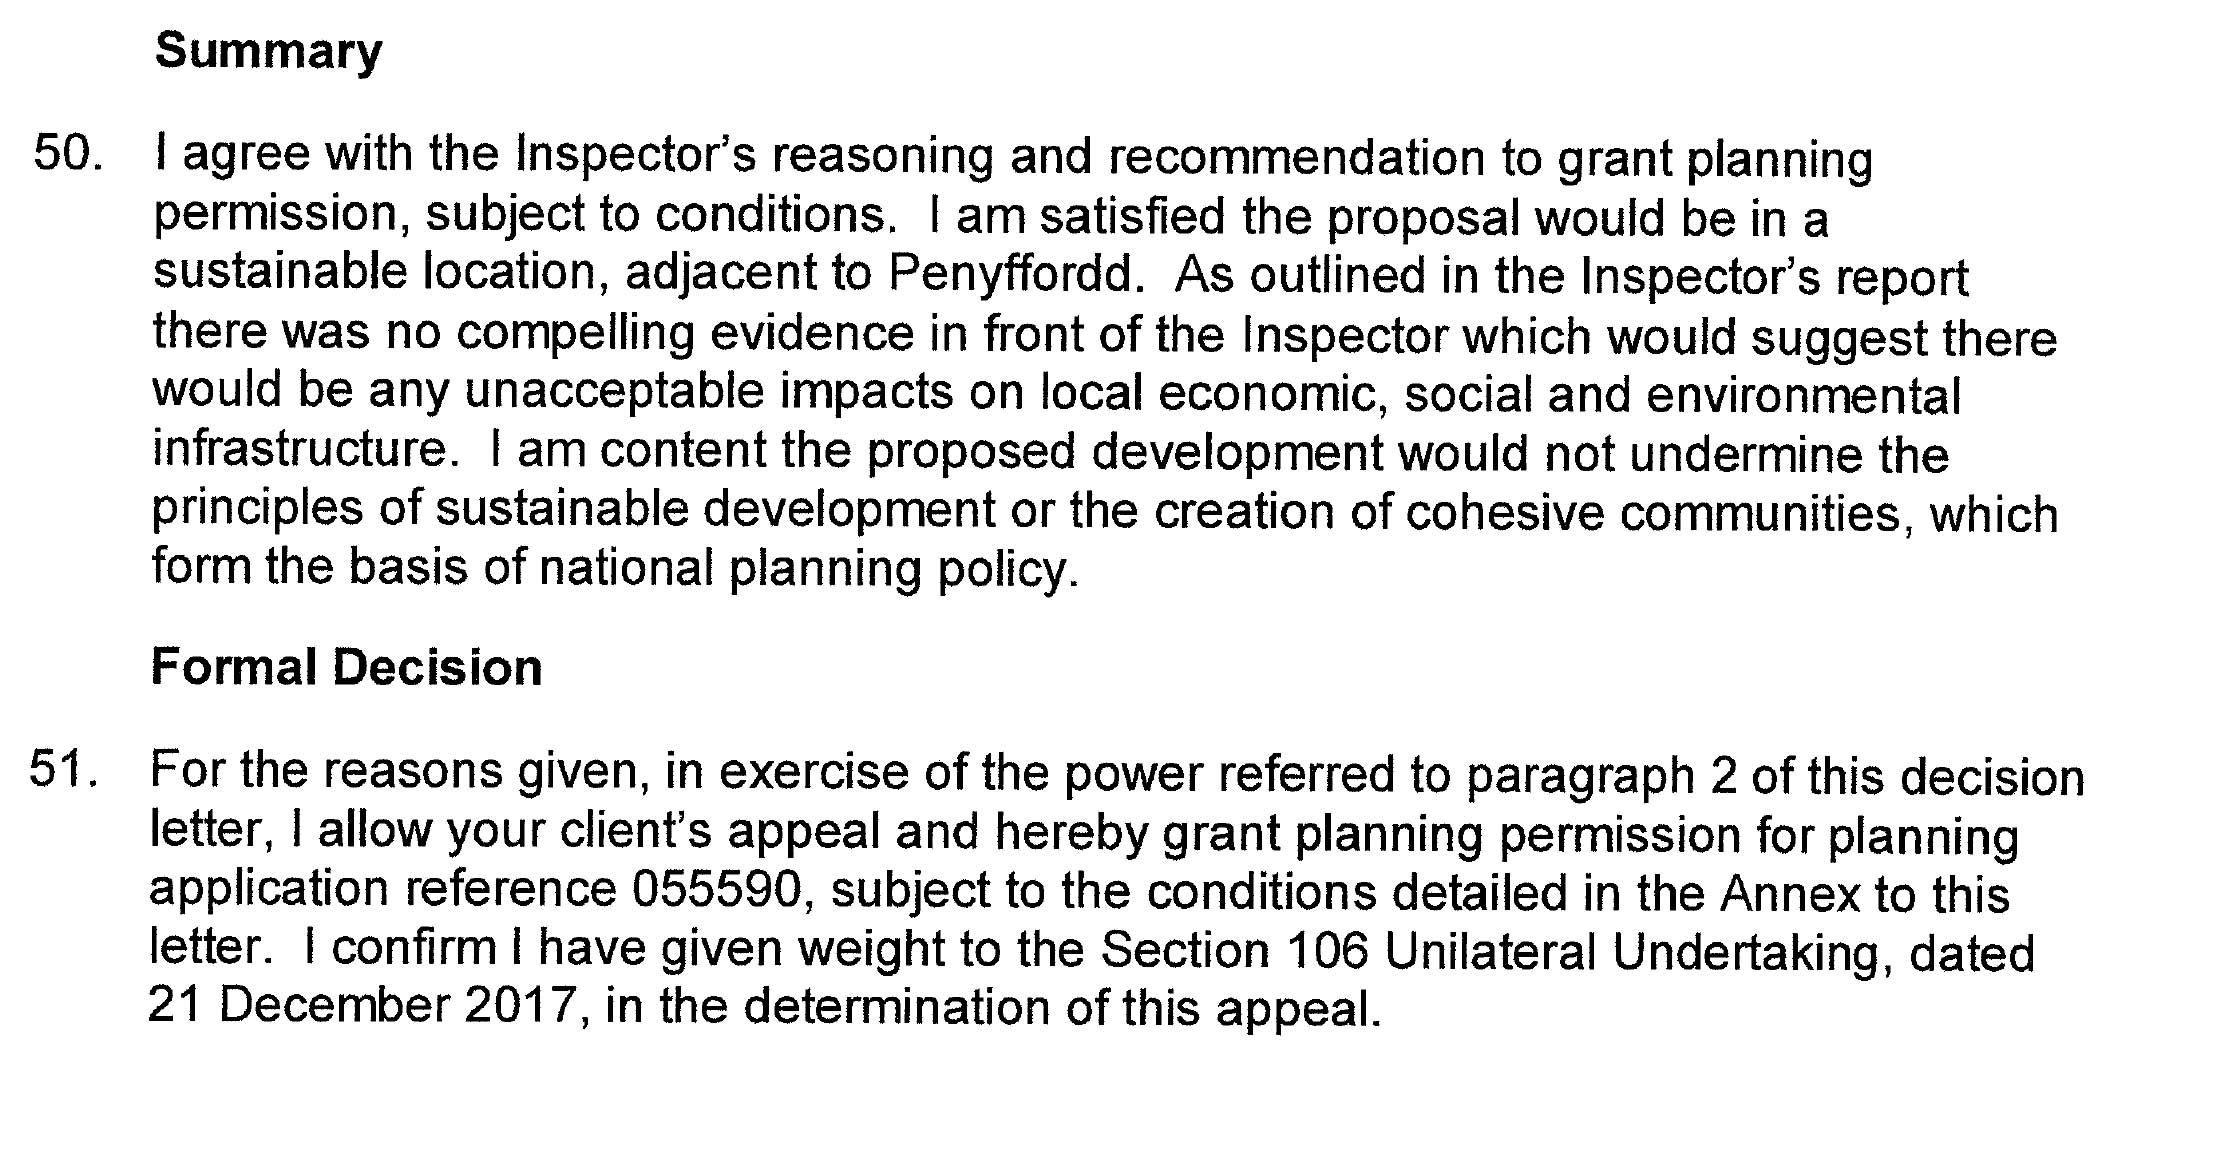 The summary by the Welsh Minister, Lesley Griffiths AM/AC who made the final decision